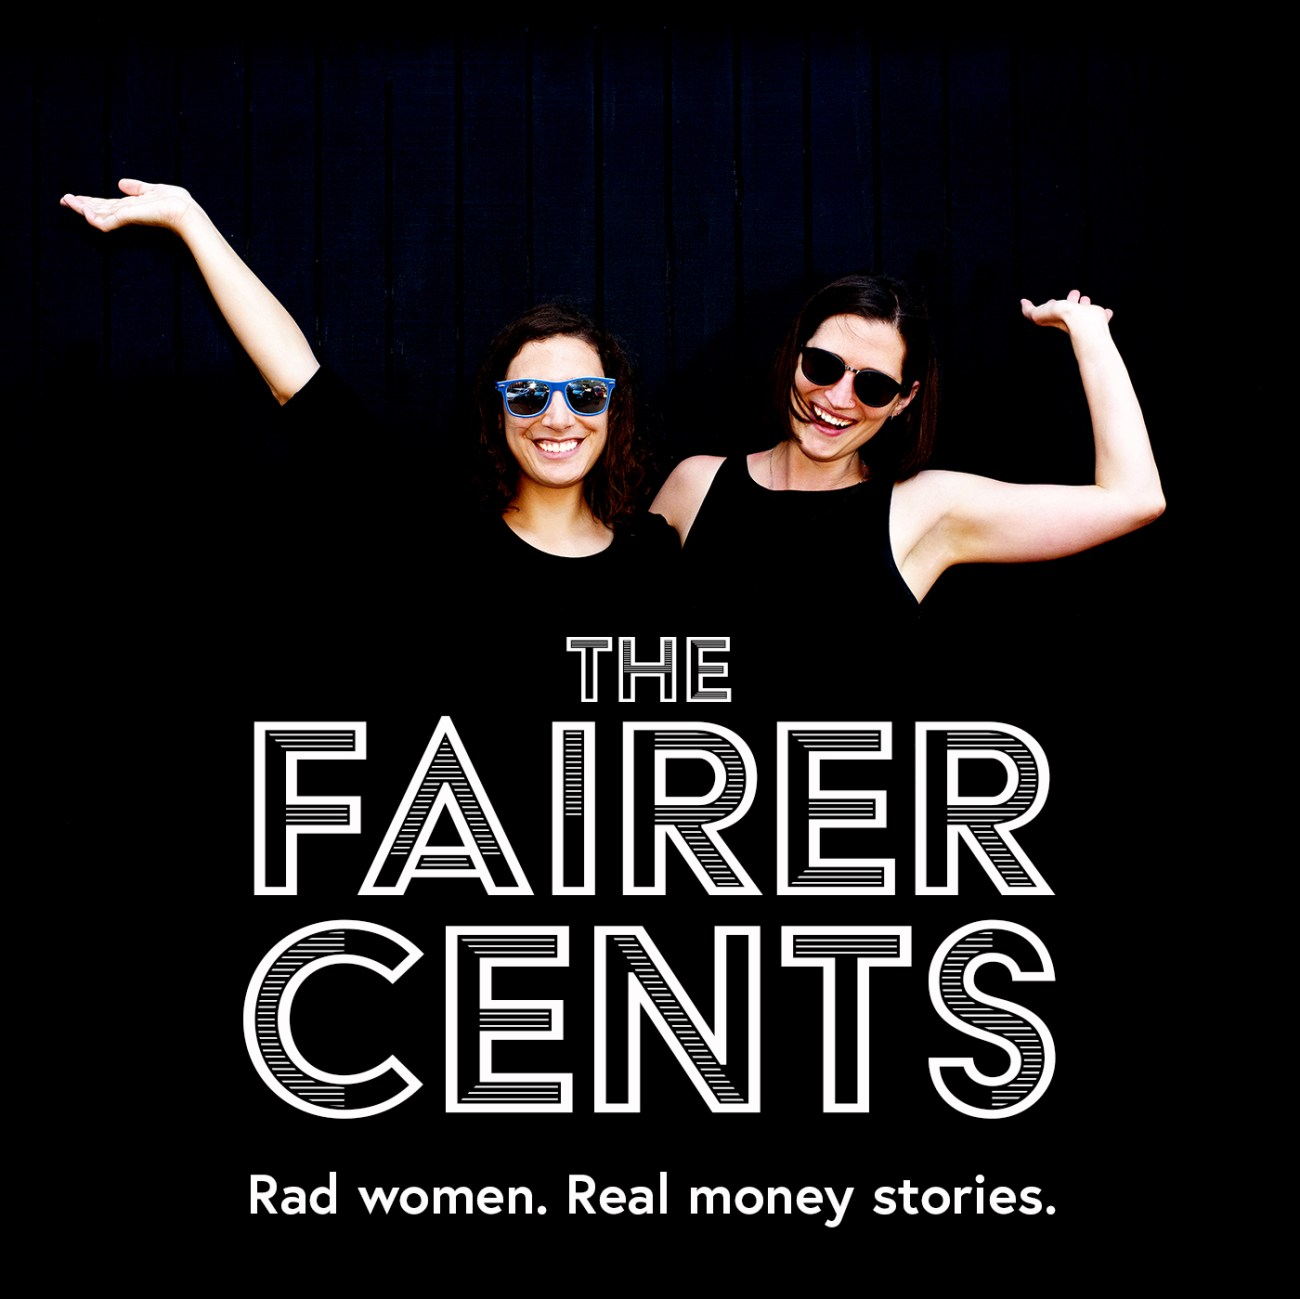 The Fairer Cents podcast -- Rad women. Real money stories. Featuring Tanja from Our Next Life and Kara from Bravely.